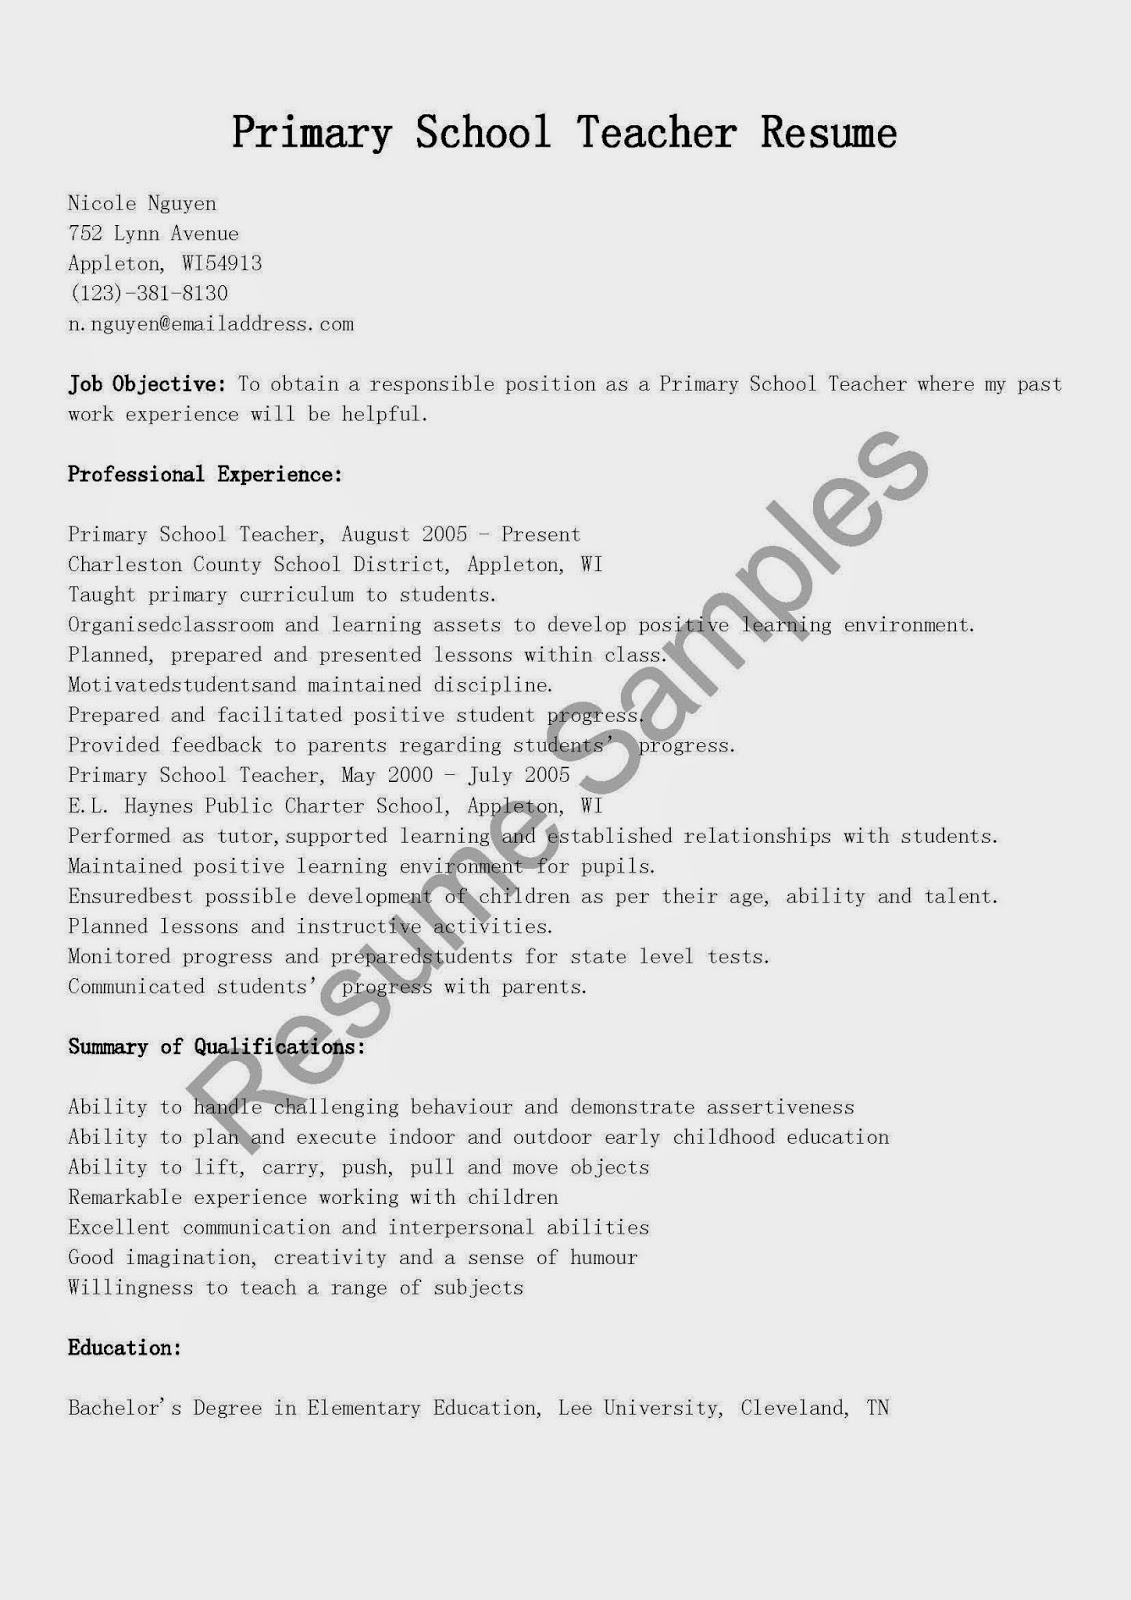 pre primary school teacher resume sample - college essay editing service reviews